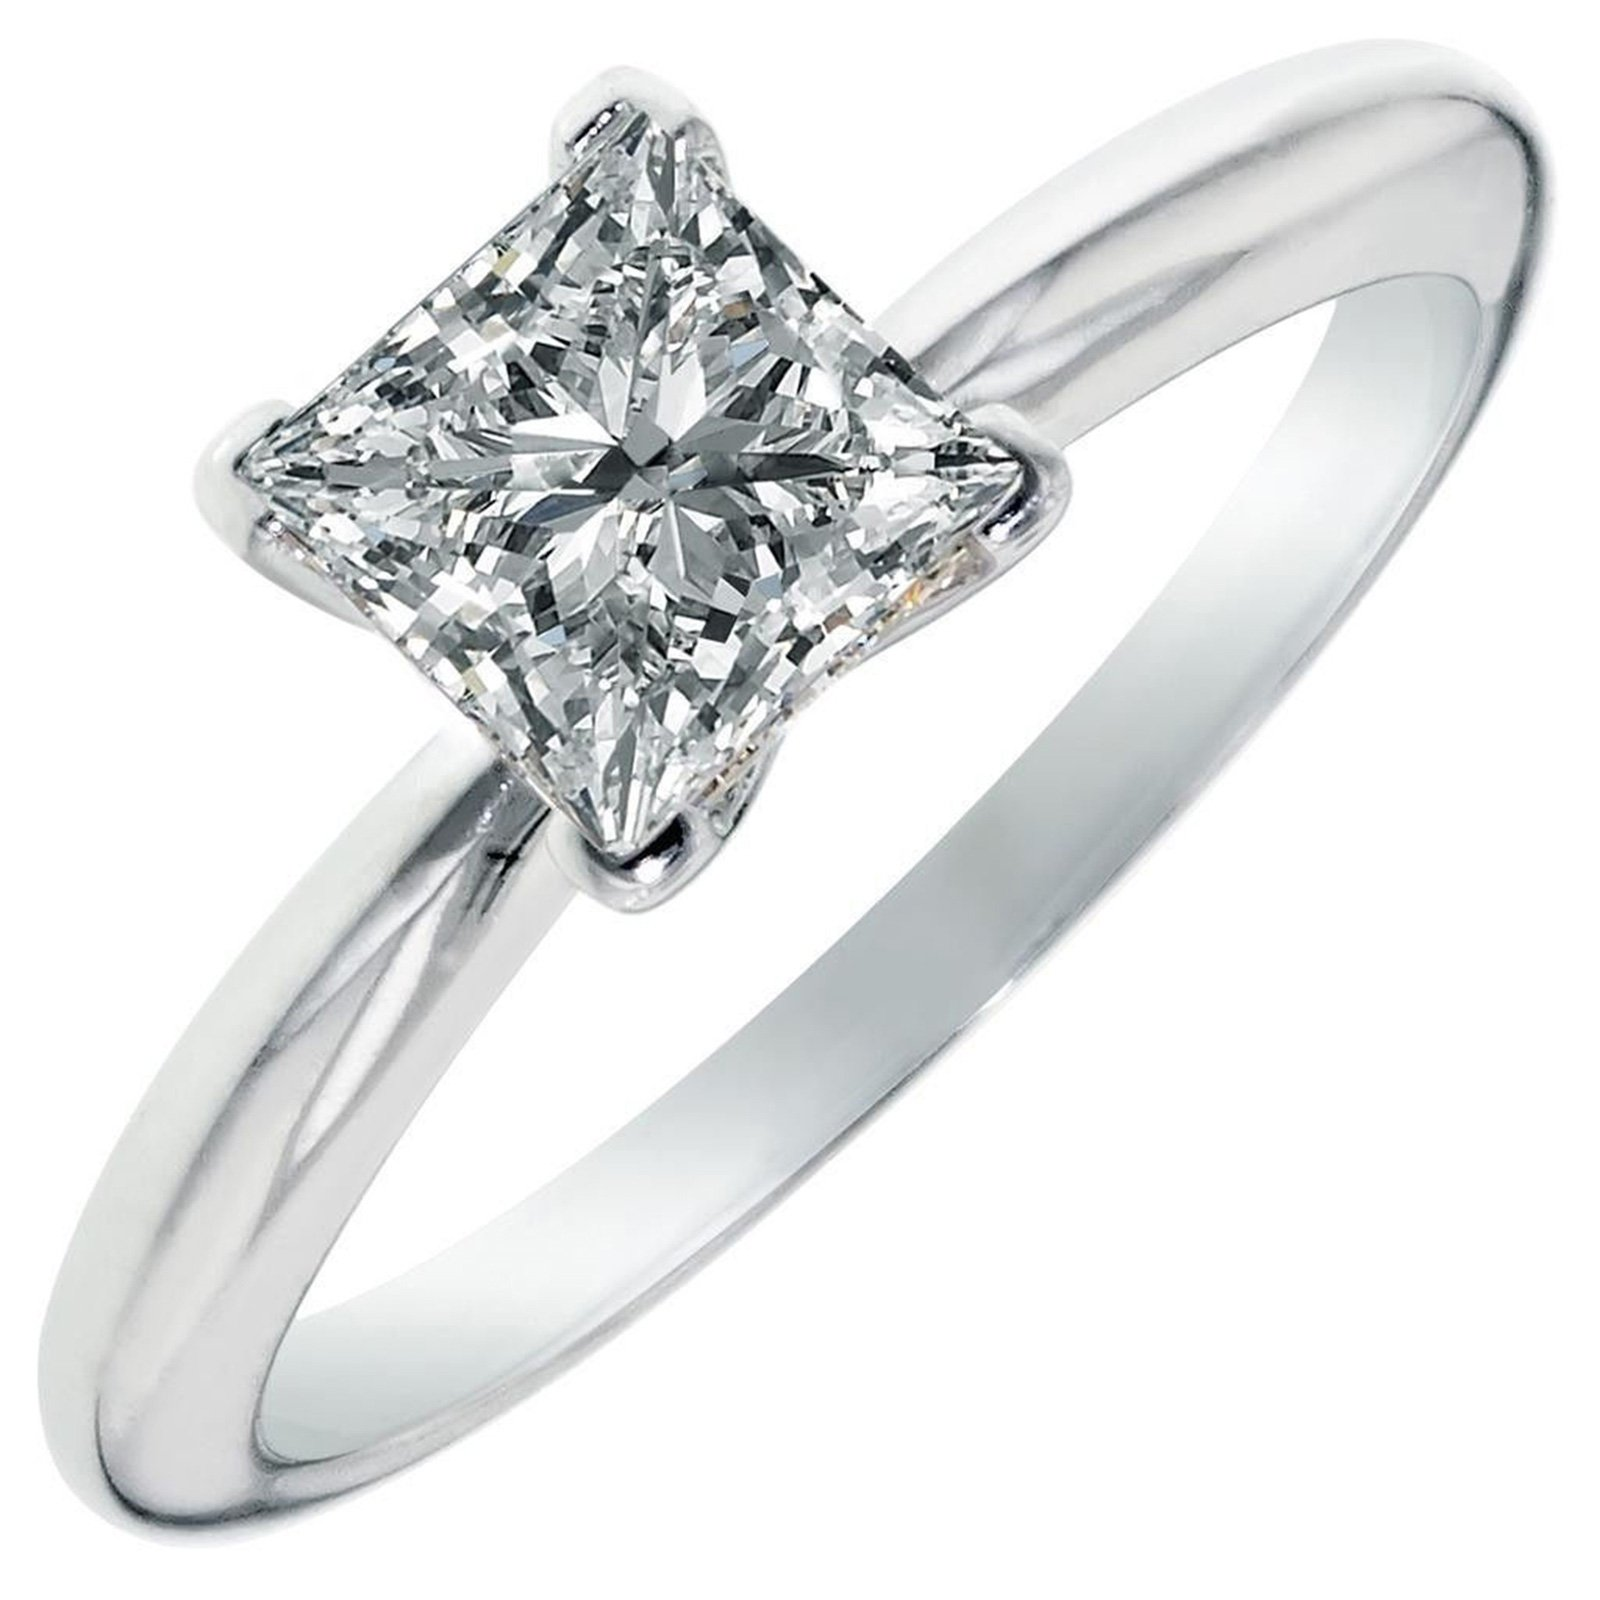 Clara Pucci 0.9 CT Princess Cut Solitaire Engagement Wedding Ring 14k White Gold, Size 5.75